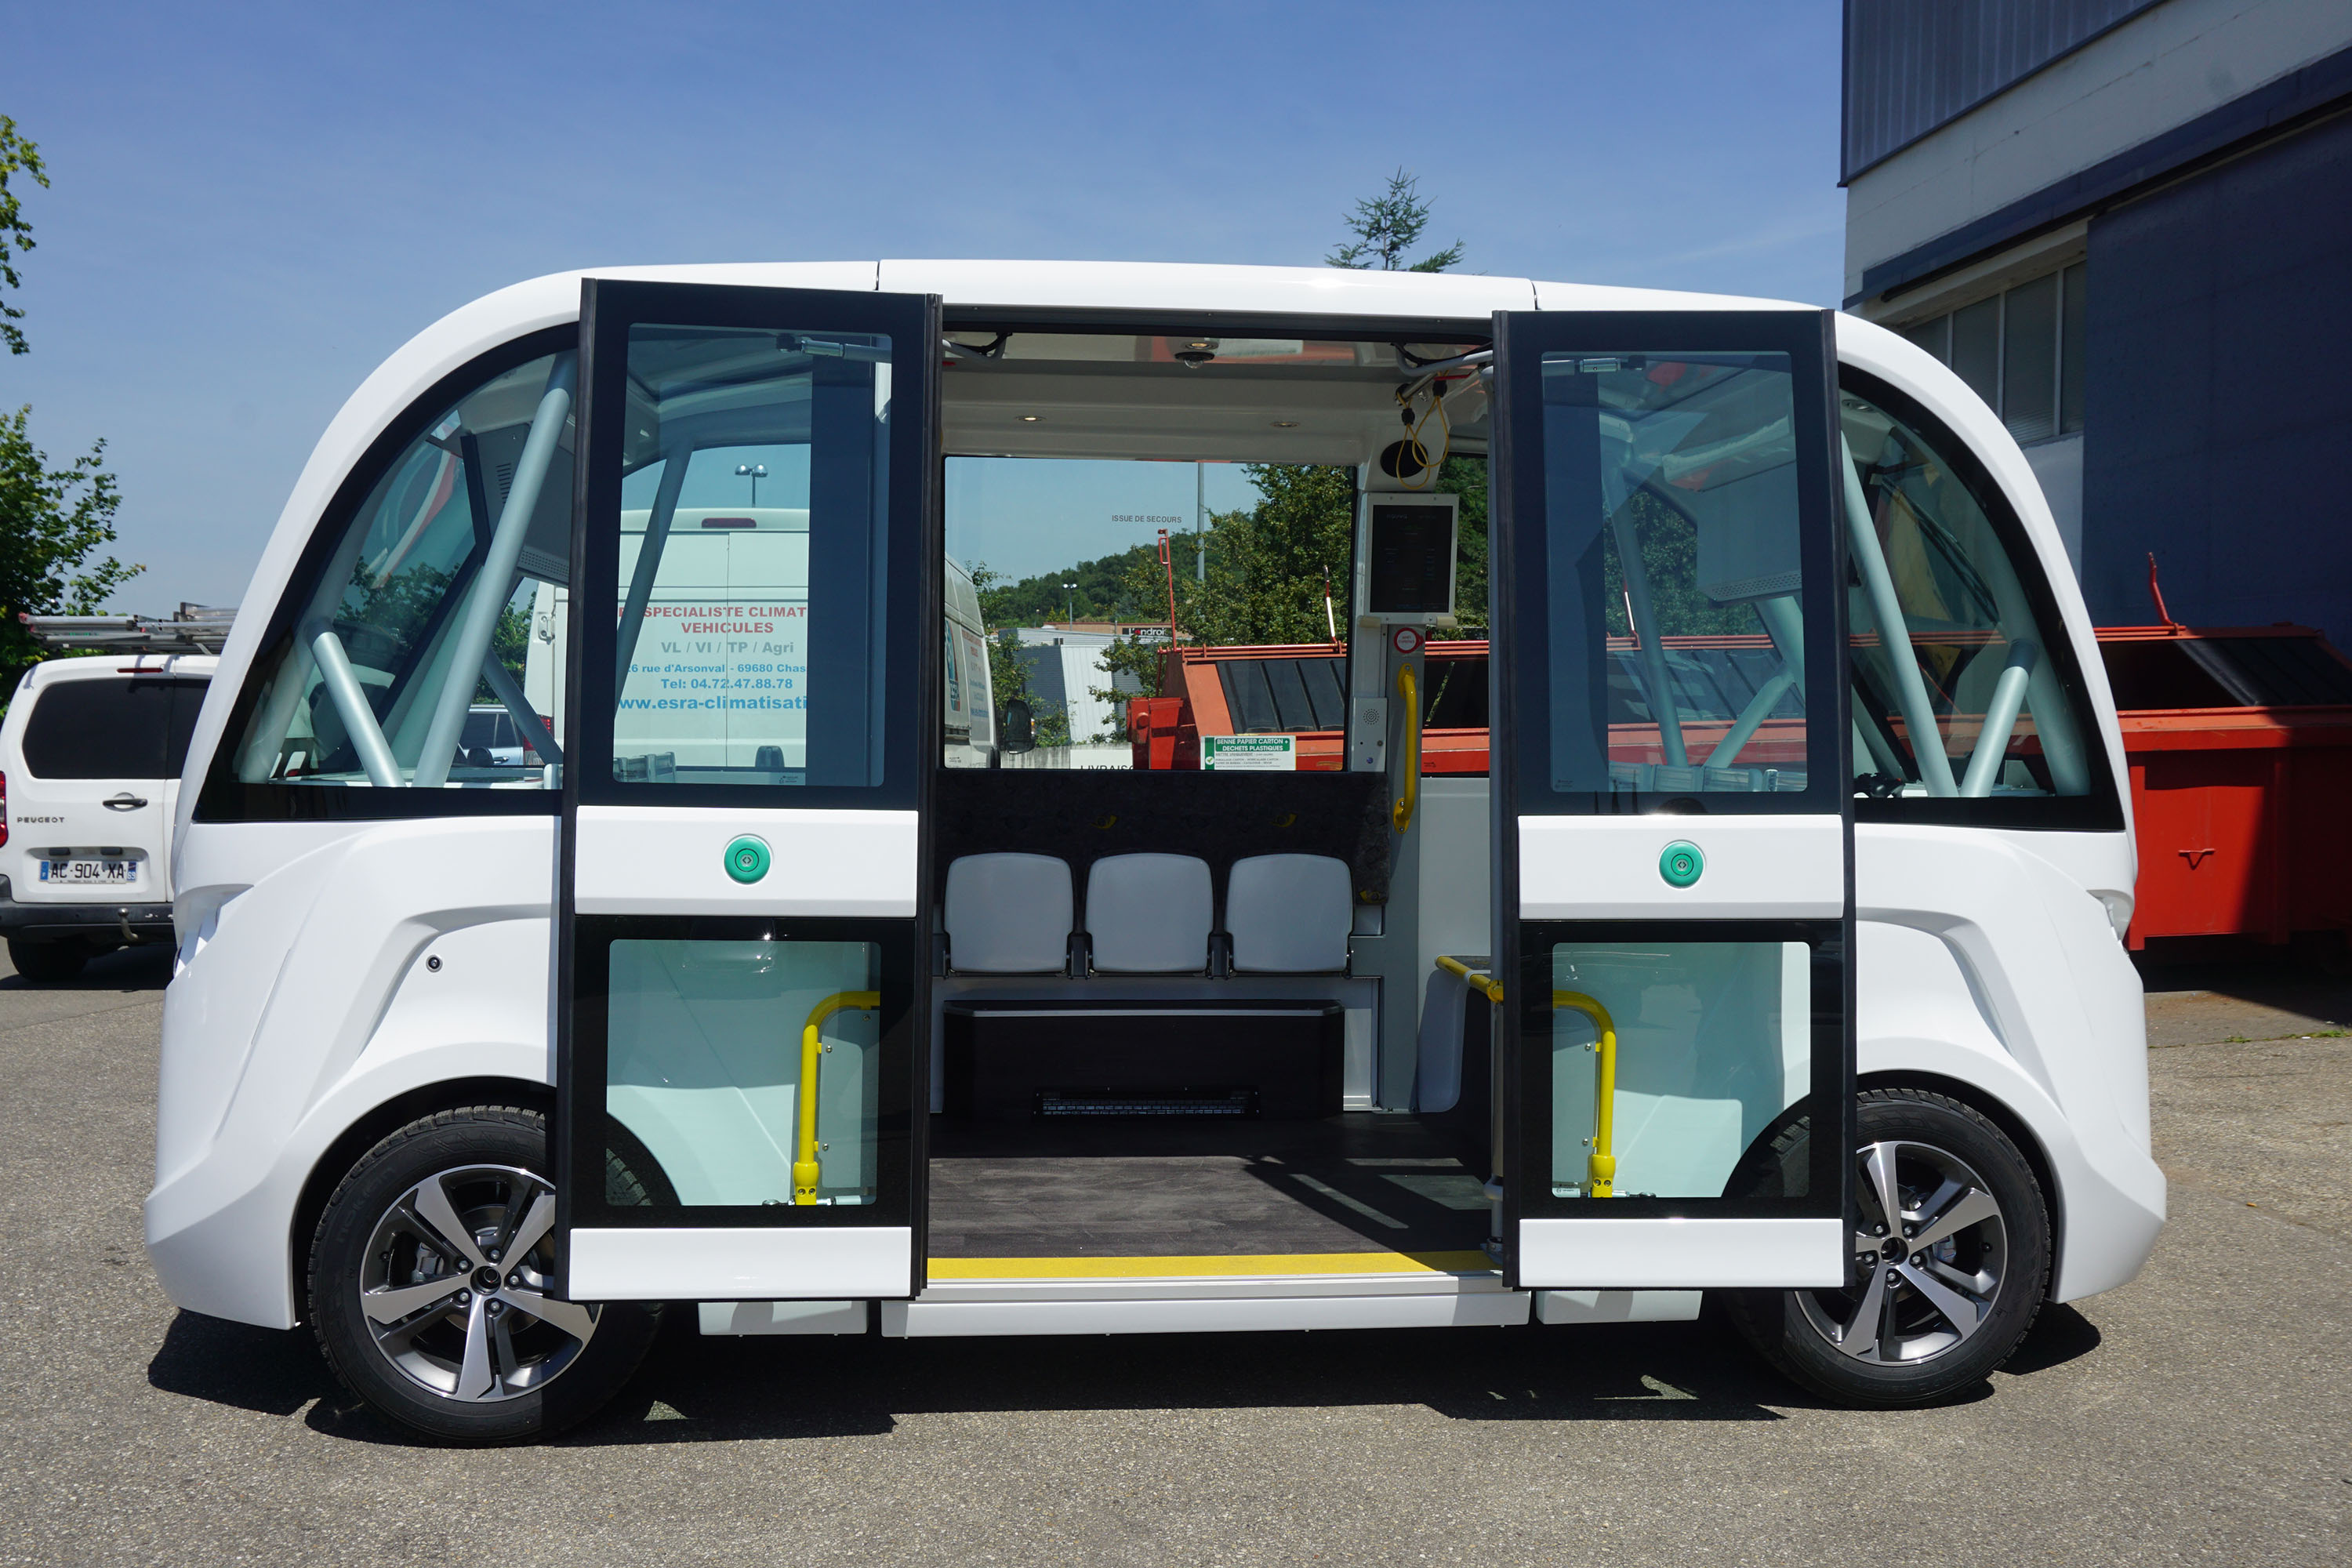 Driverless vehicle on display in Madison